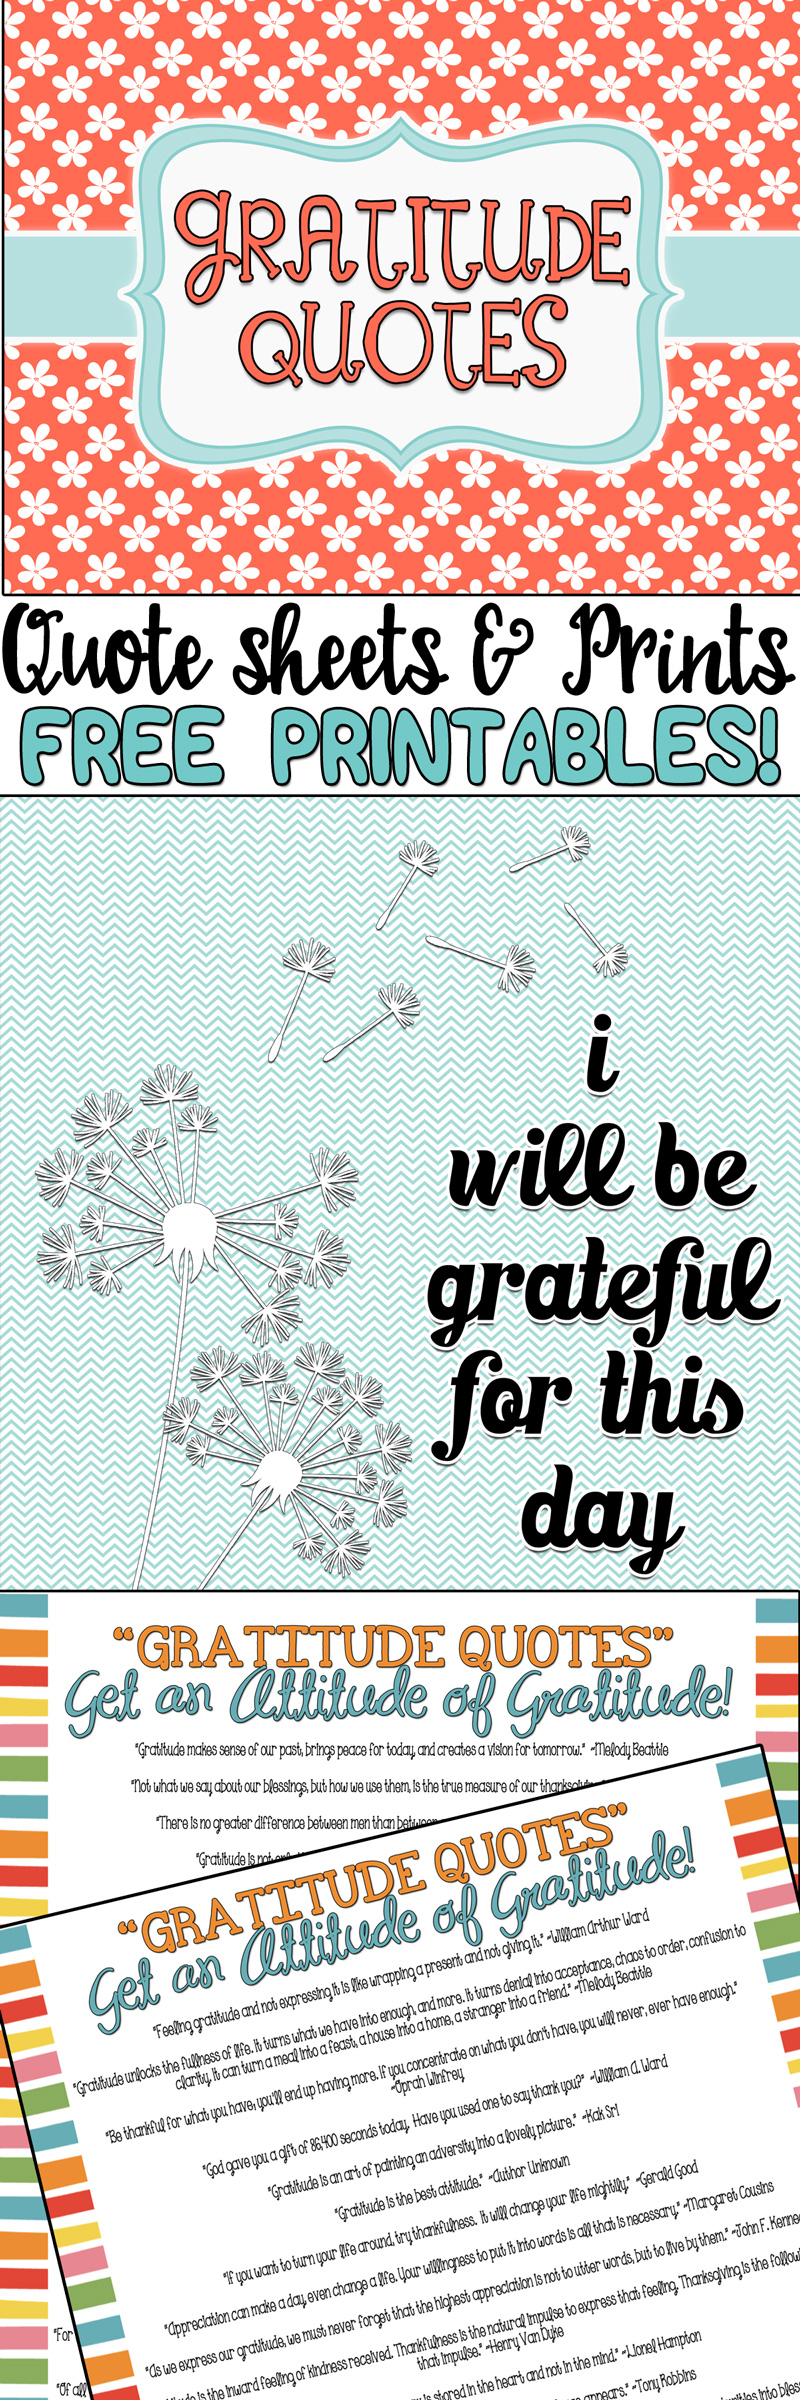 Gratitude Quotes …for Gratitude is a Tremendous Virtue!